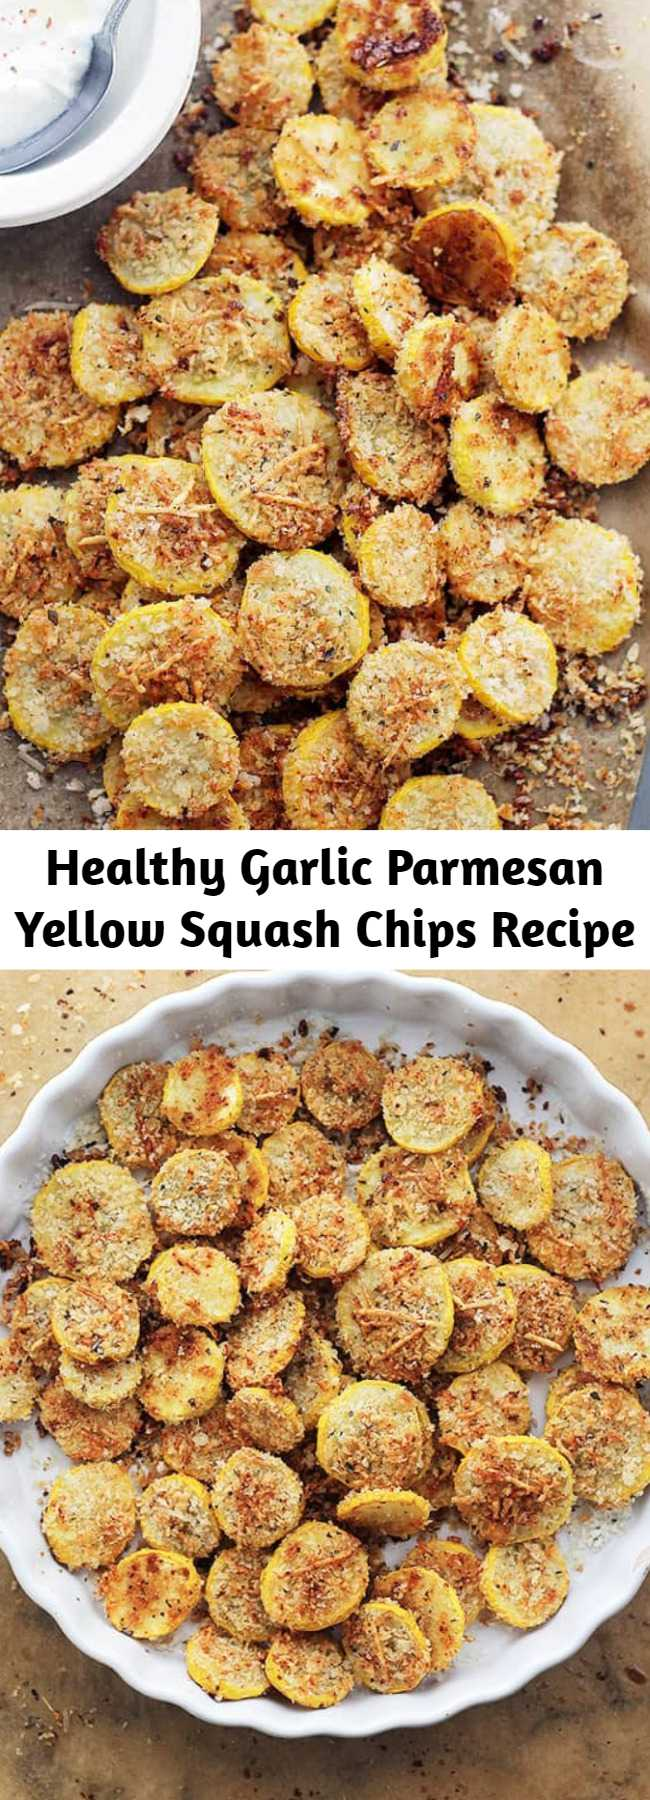 Healthy Garlic Parmesan Yellow Squash Chips Recipe - A healthy snack or appetizer that is incredibly flavorful, crispy, and absolutely delicious! These are BEYOND amazing!